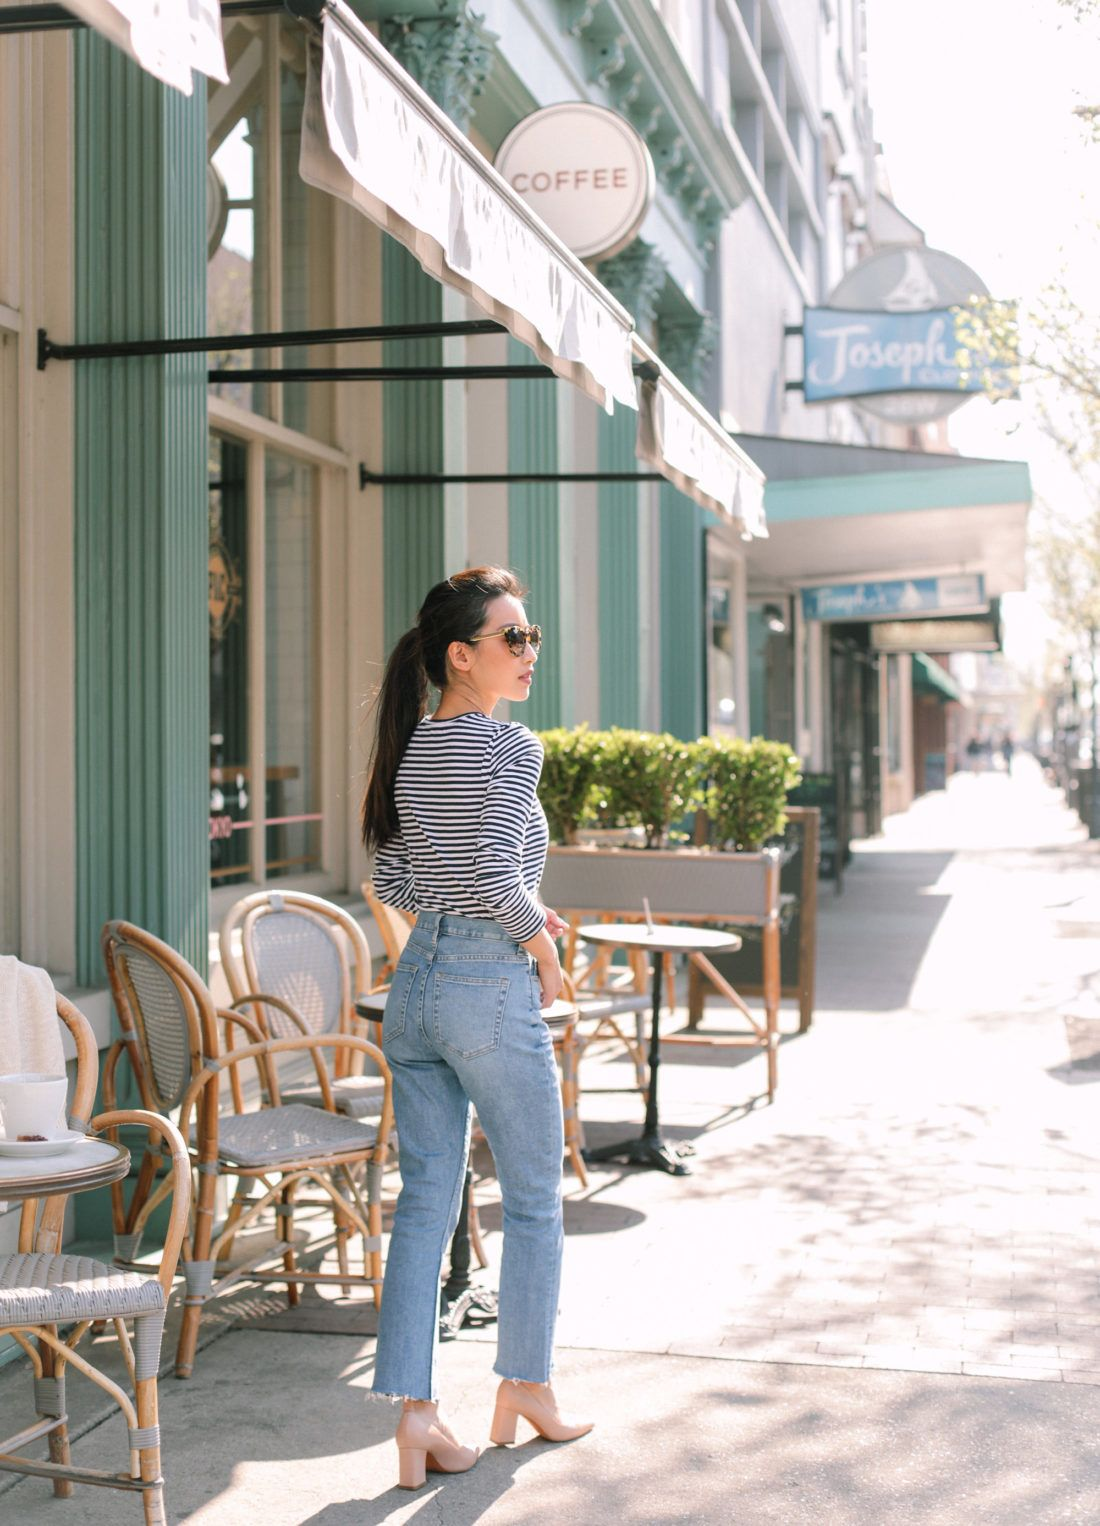 Everlanes petite friendly jeans and sweaters